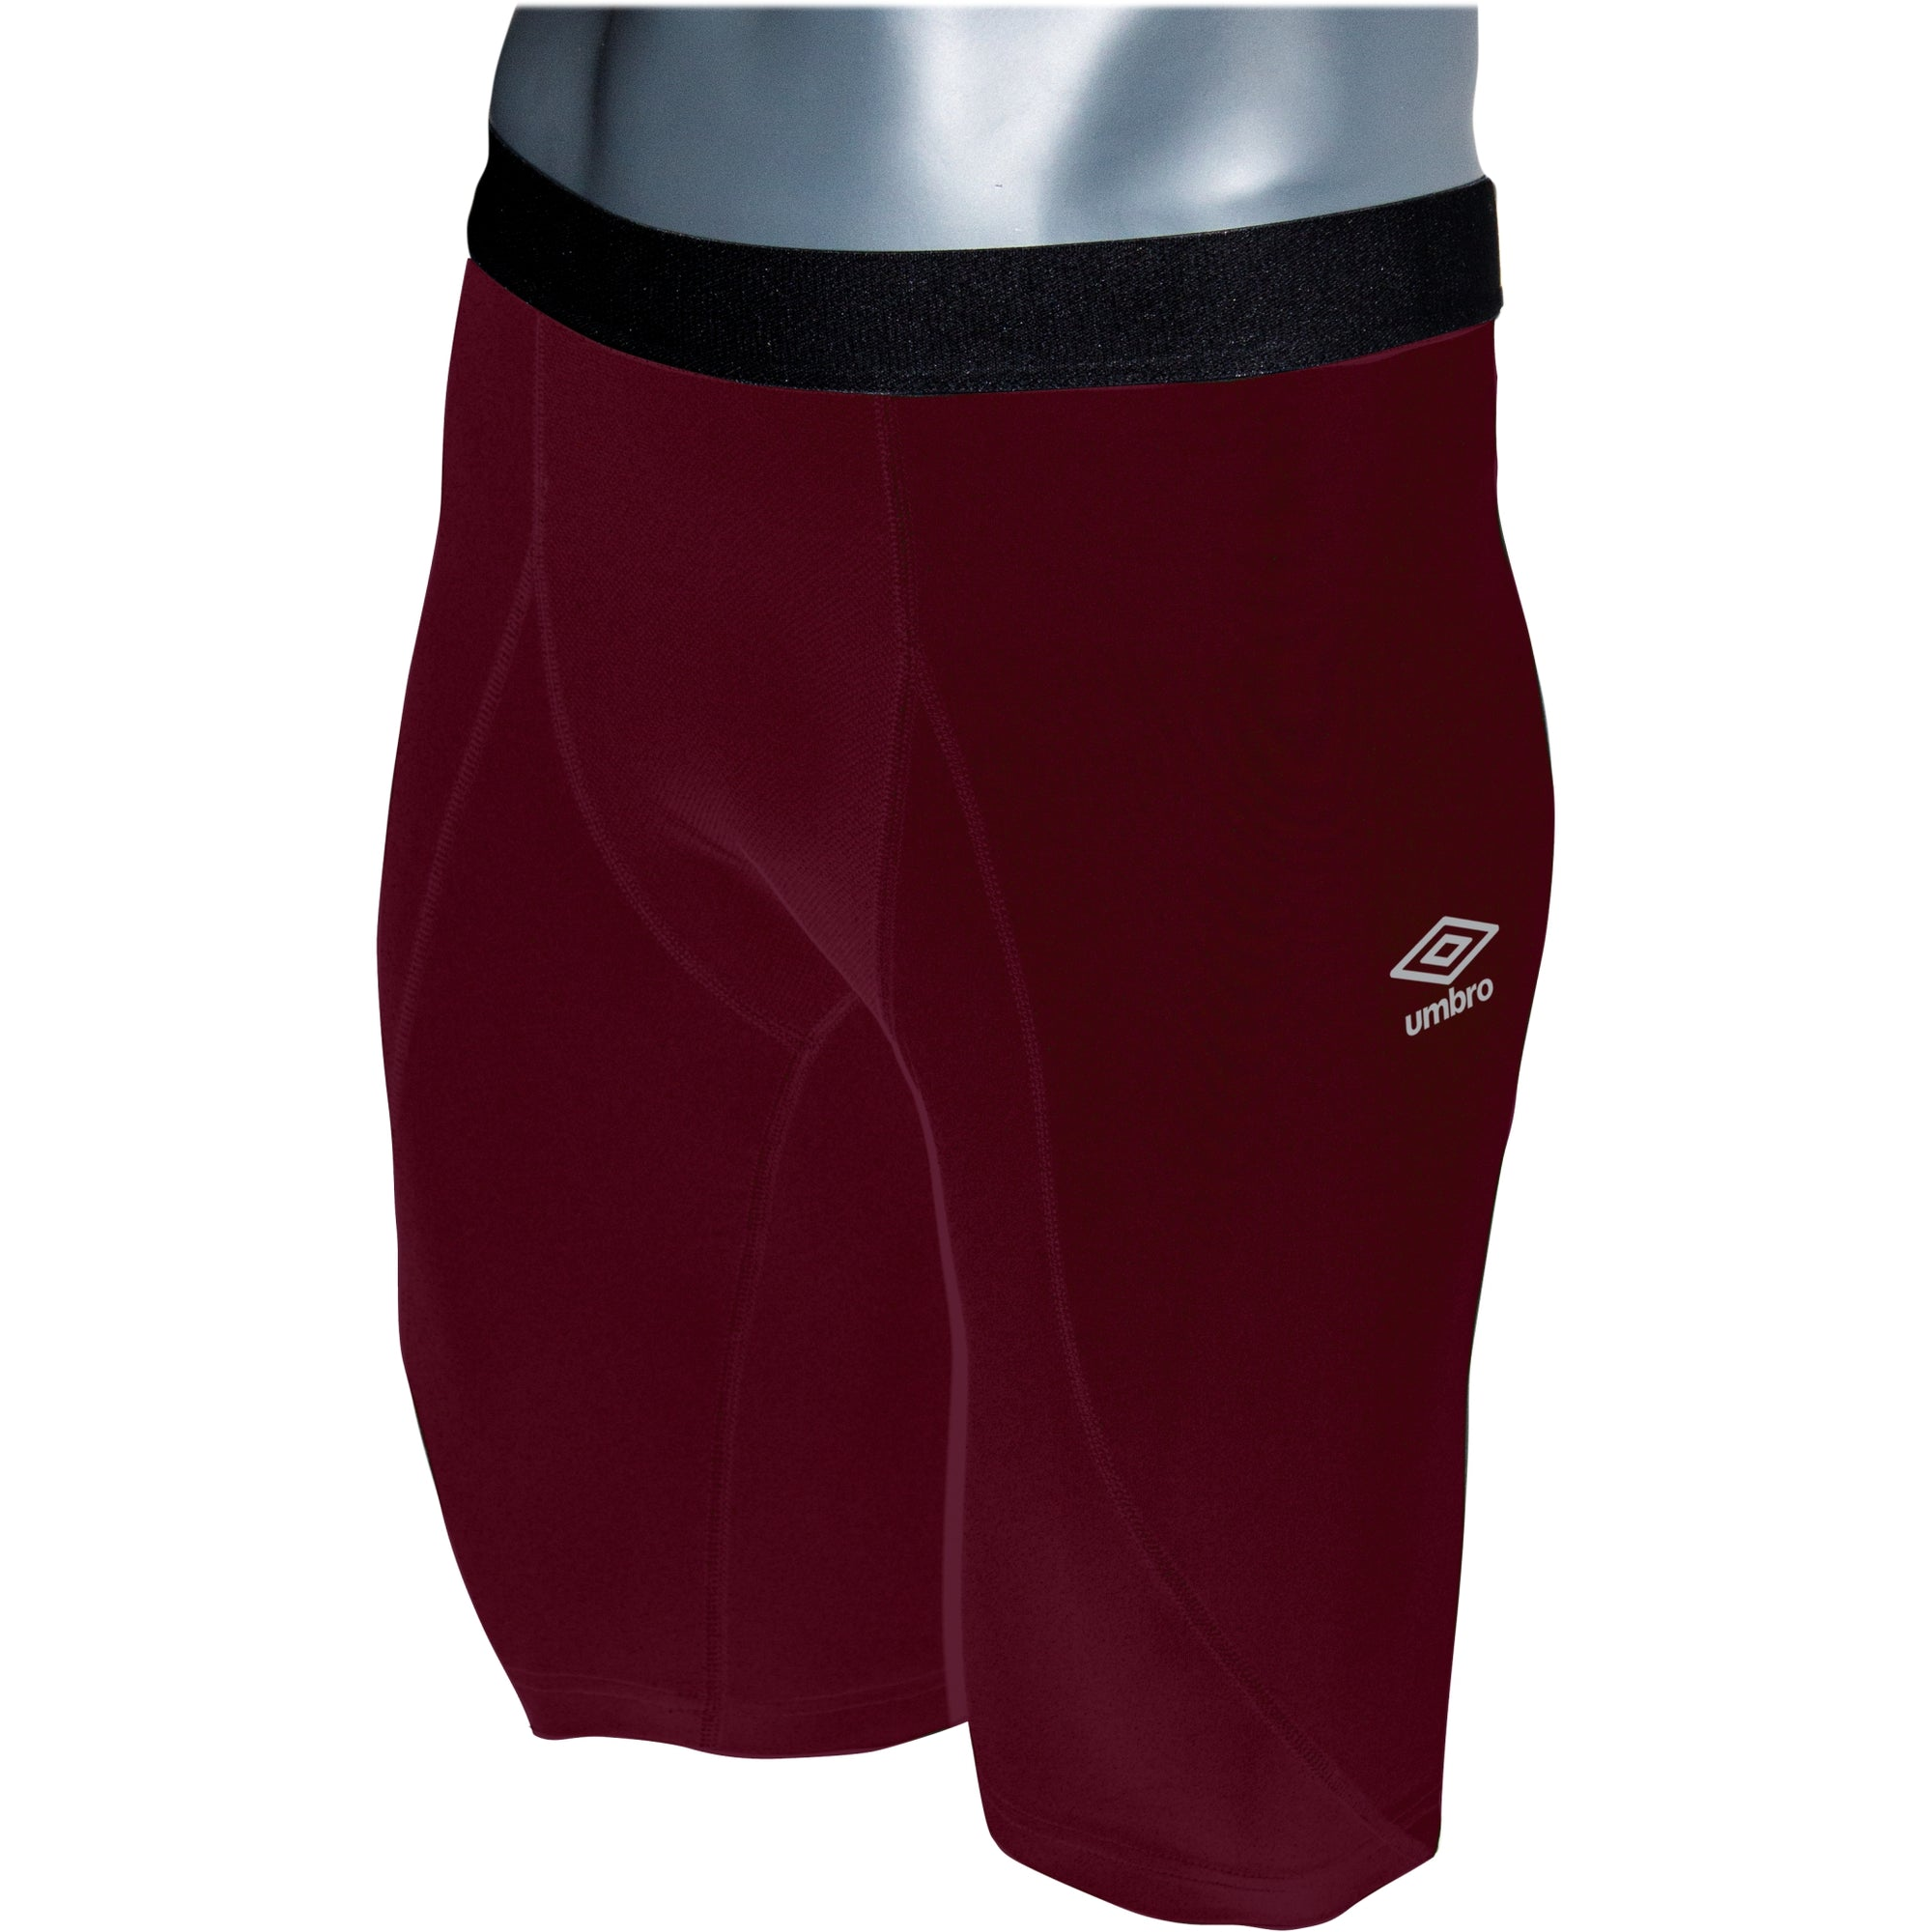 Umbro Elite Player Power Short in new claret with black waist band